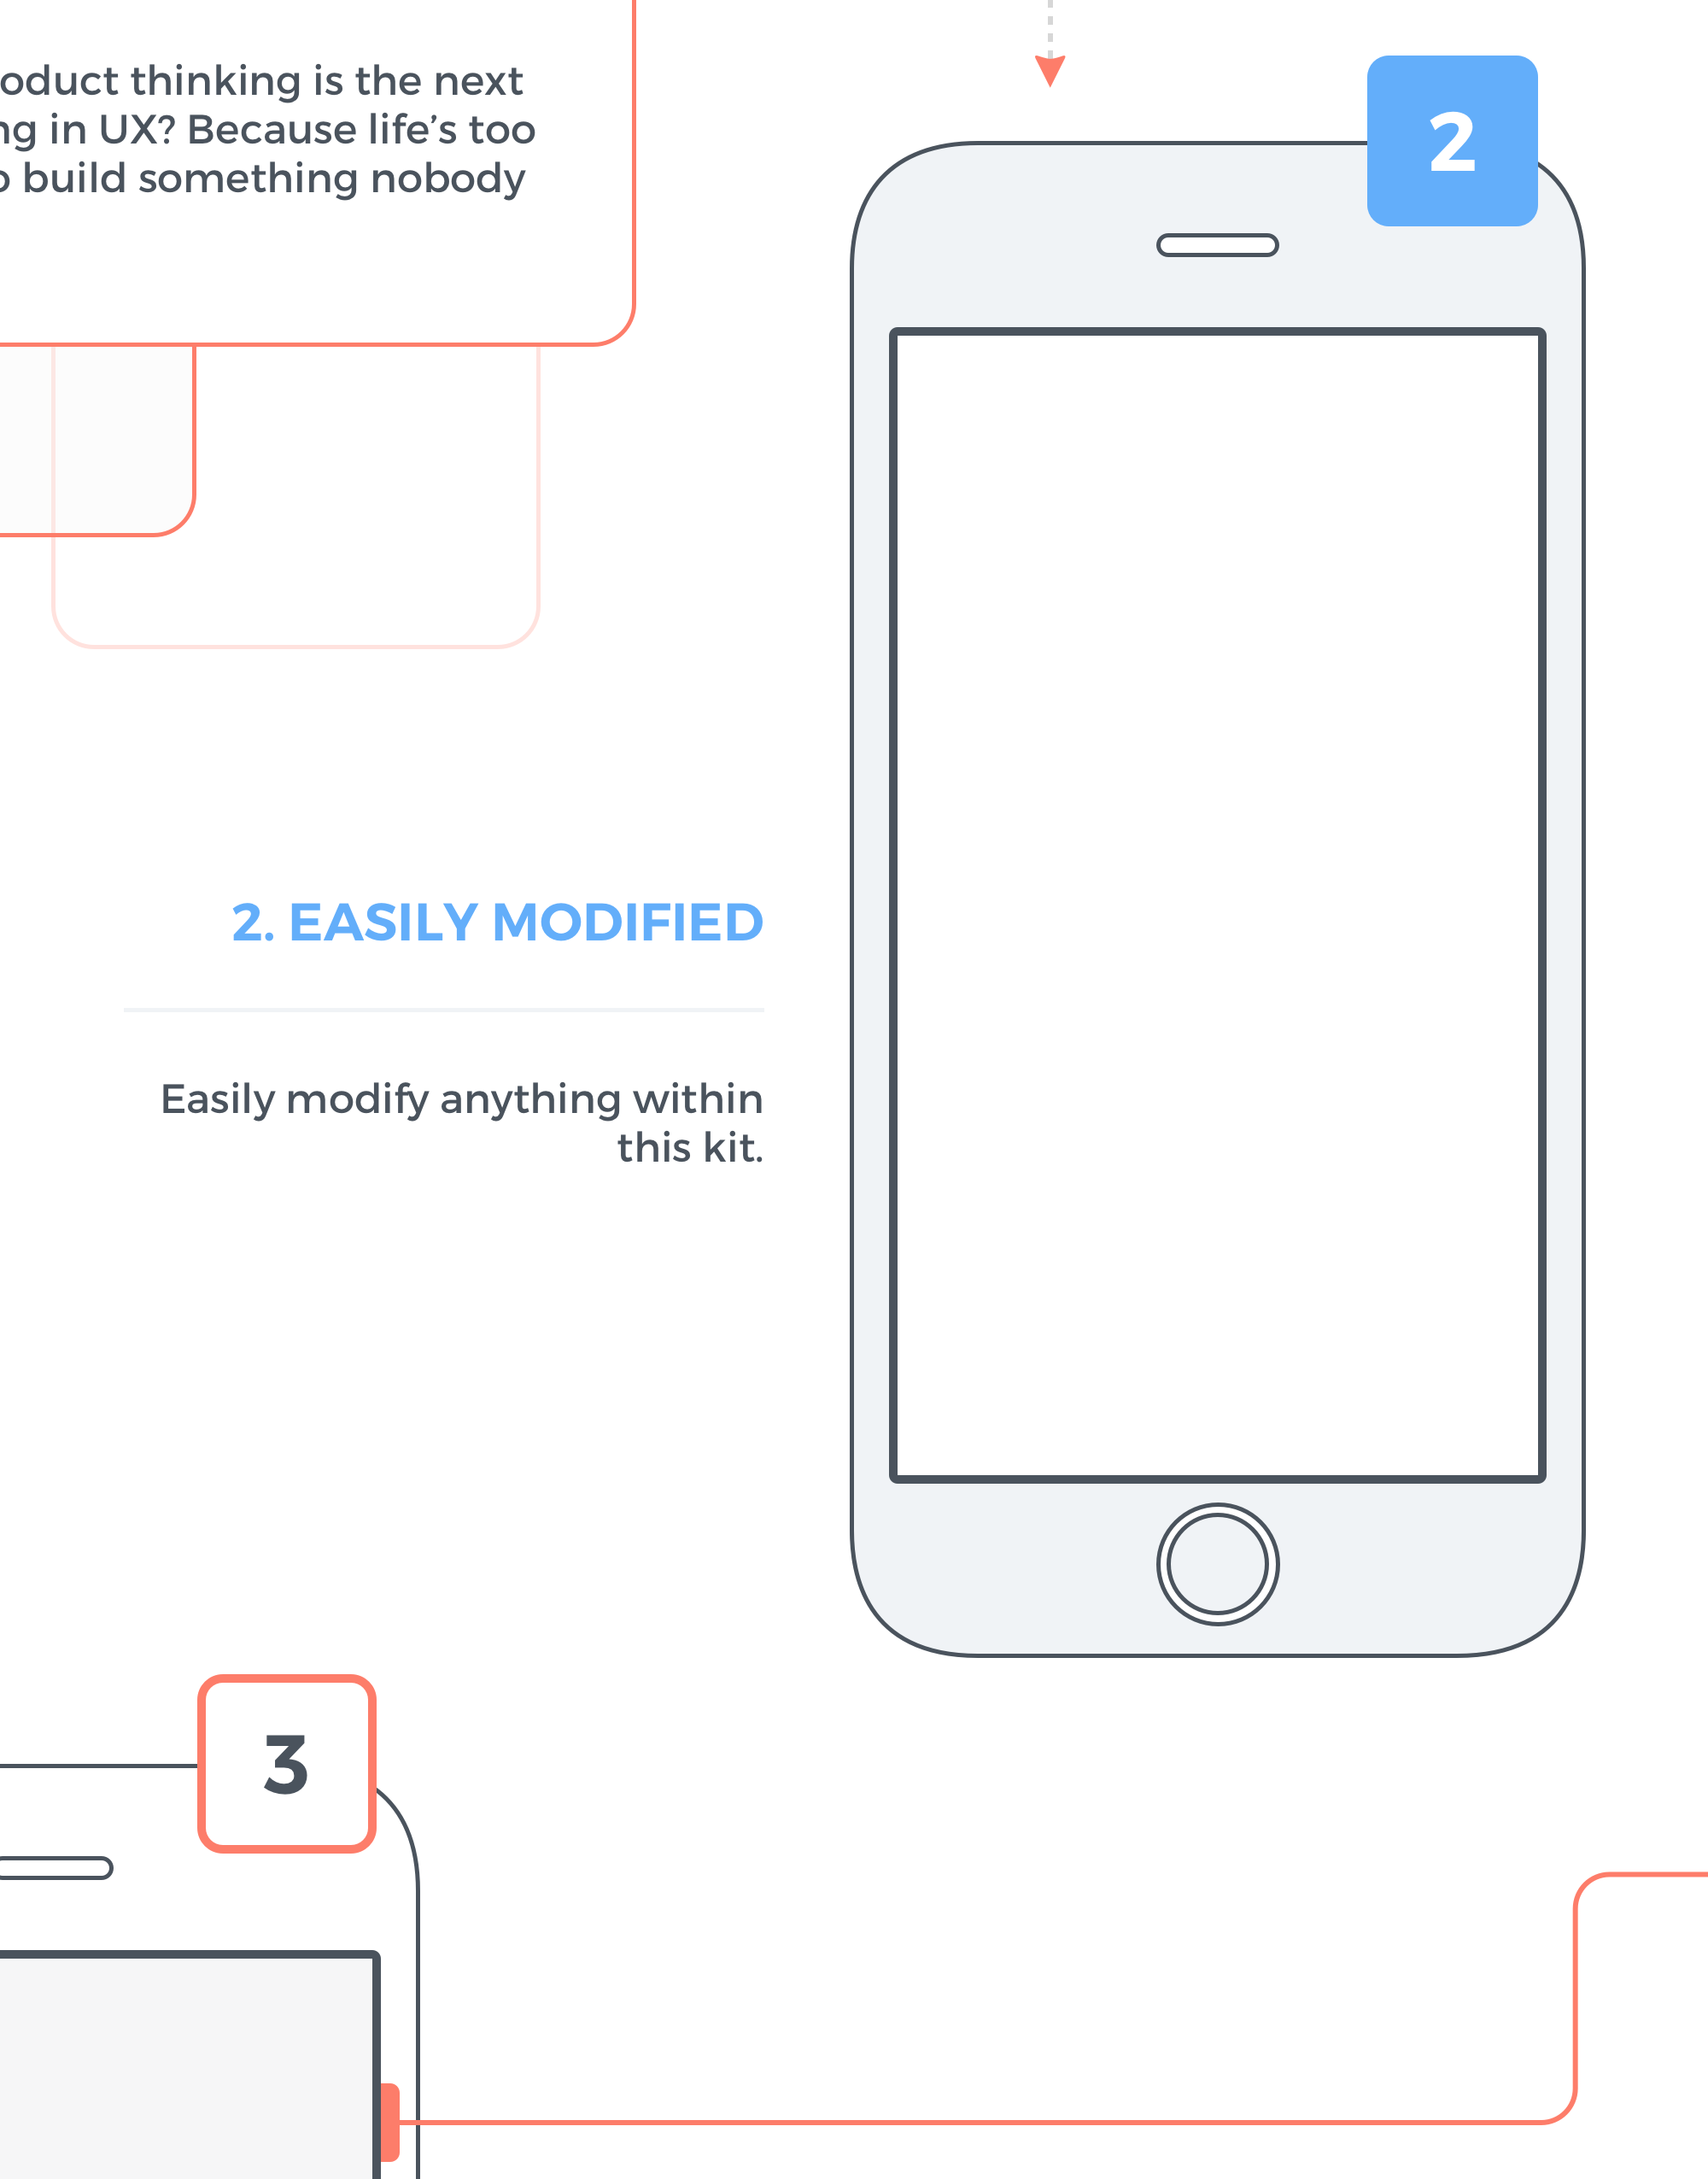 Easily modified flow chart for sketch